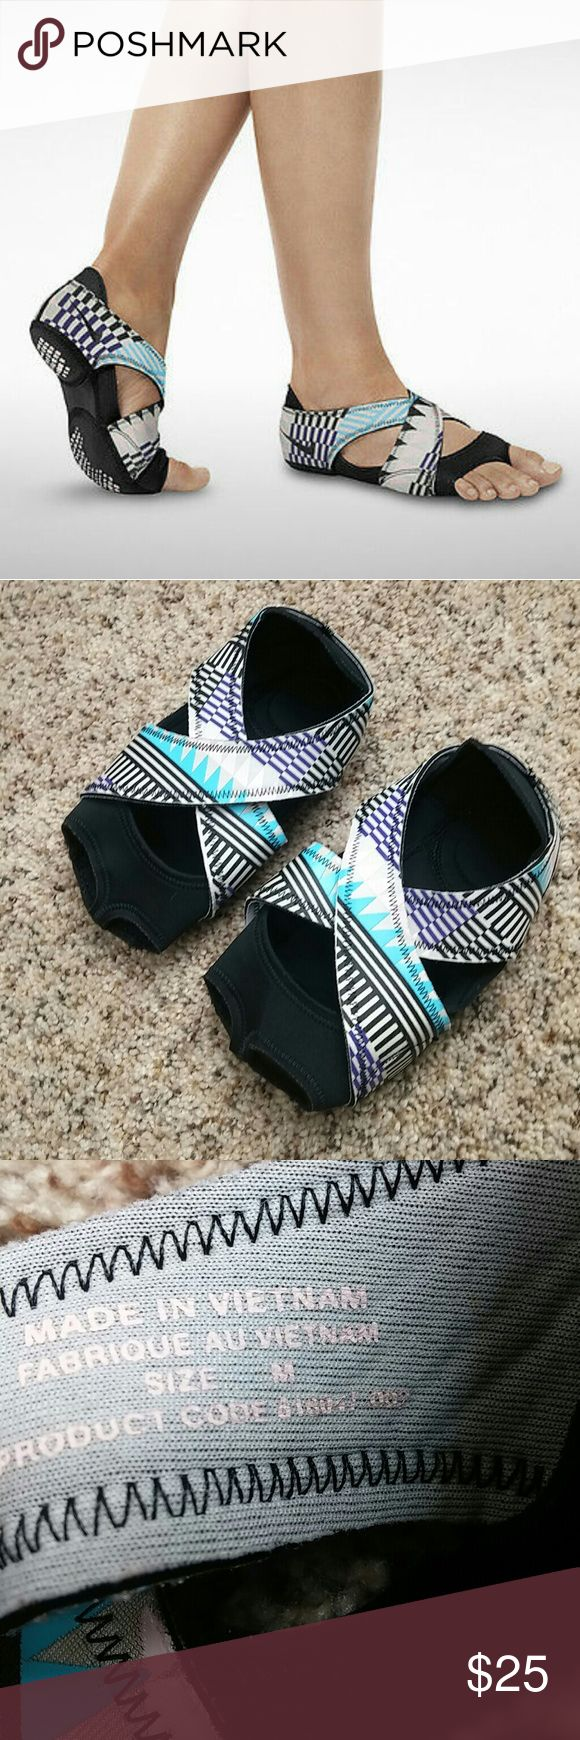 Nike studio wrap training yoga dance shoes Super cute pre owned in excellent condition Nike Shoes